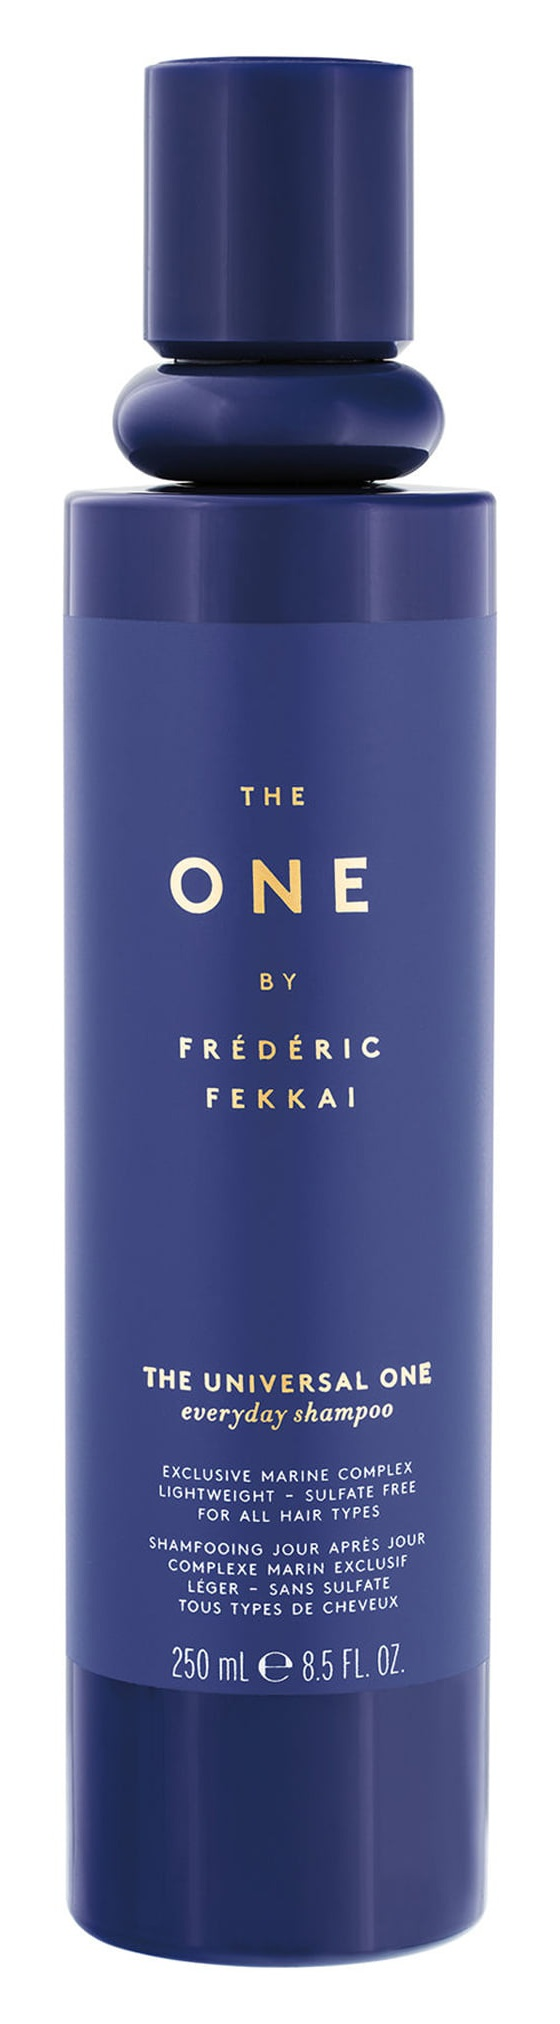 The One by Frederic Fekkai The Universal One Everyday Shampoo